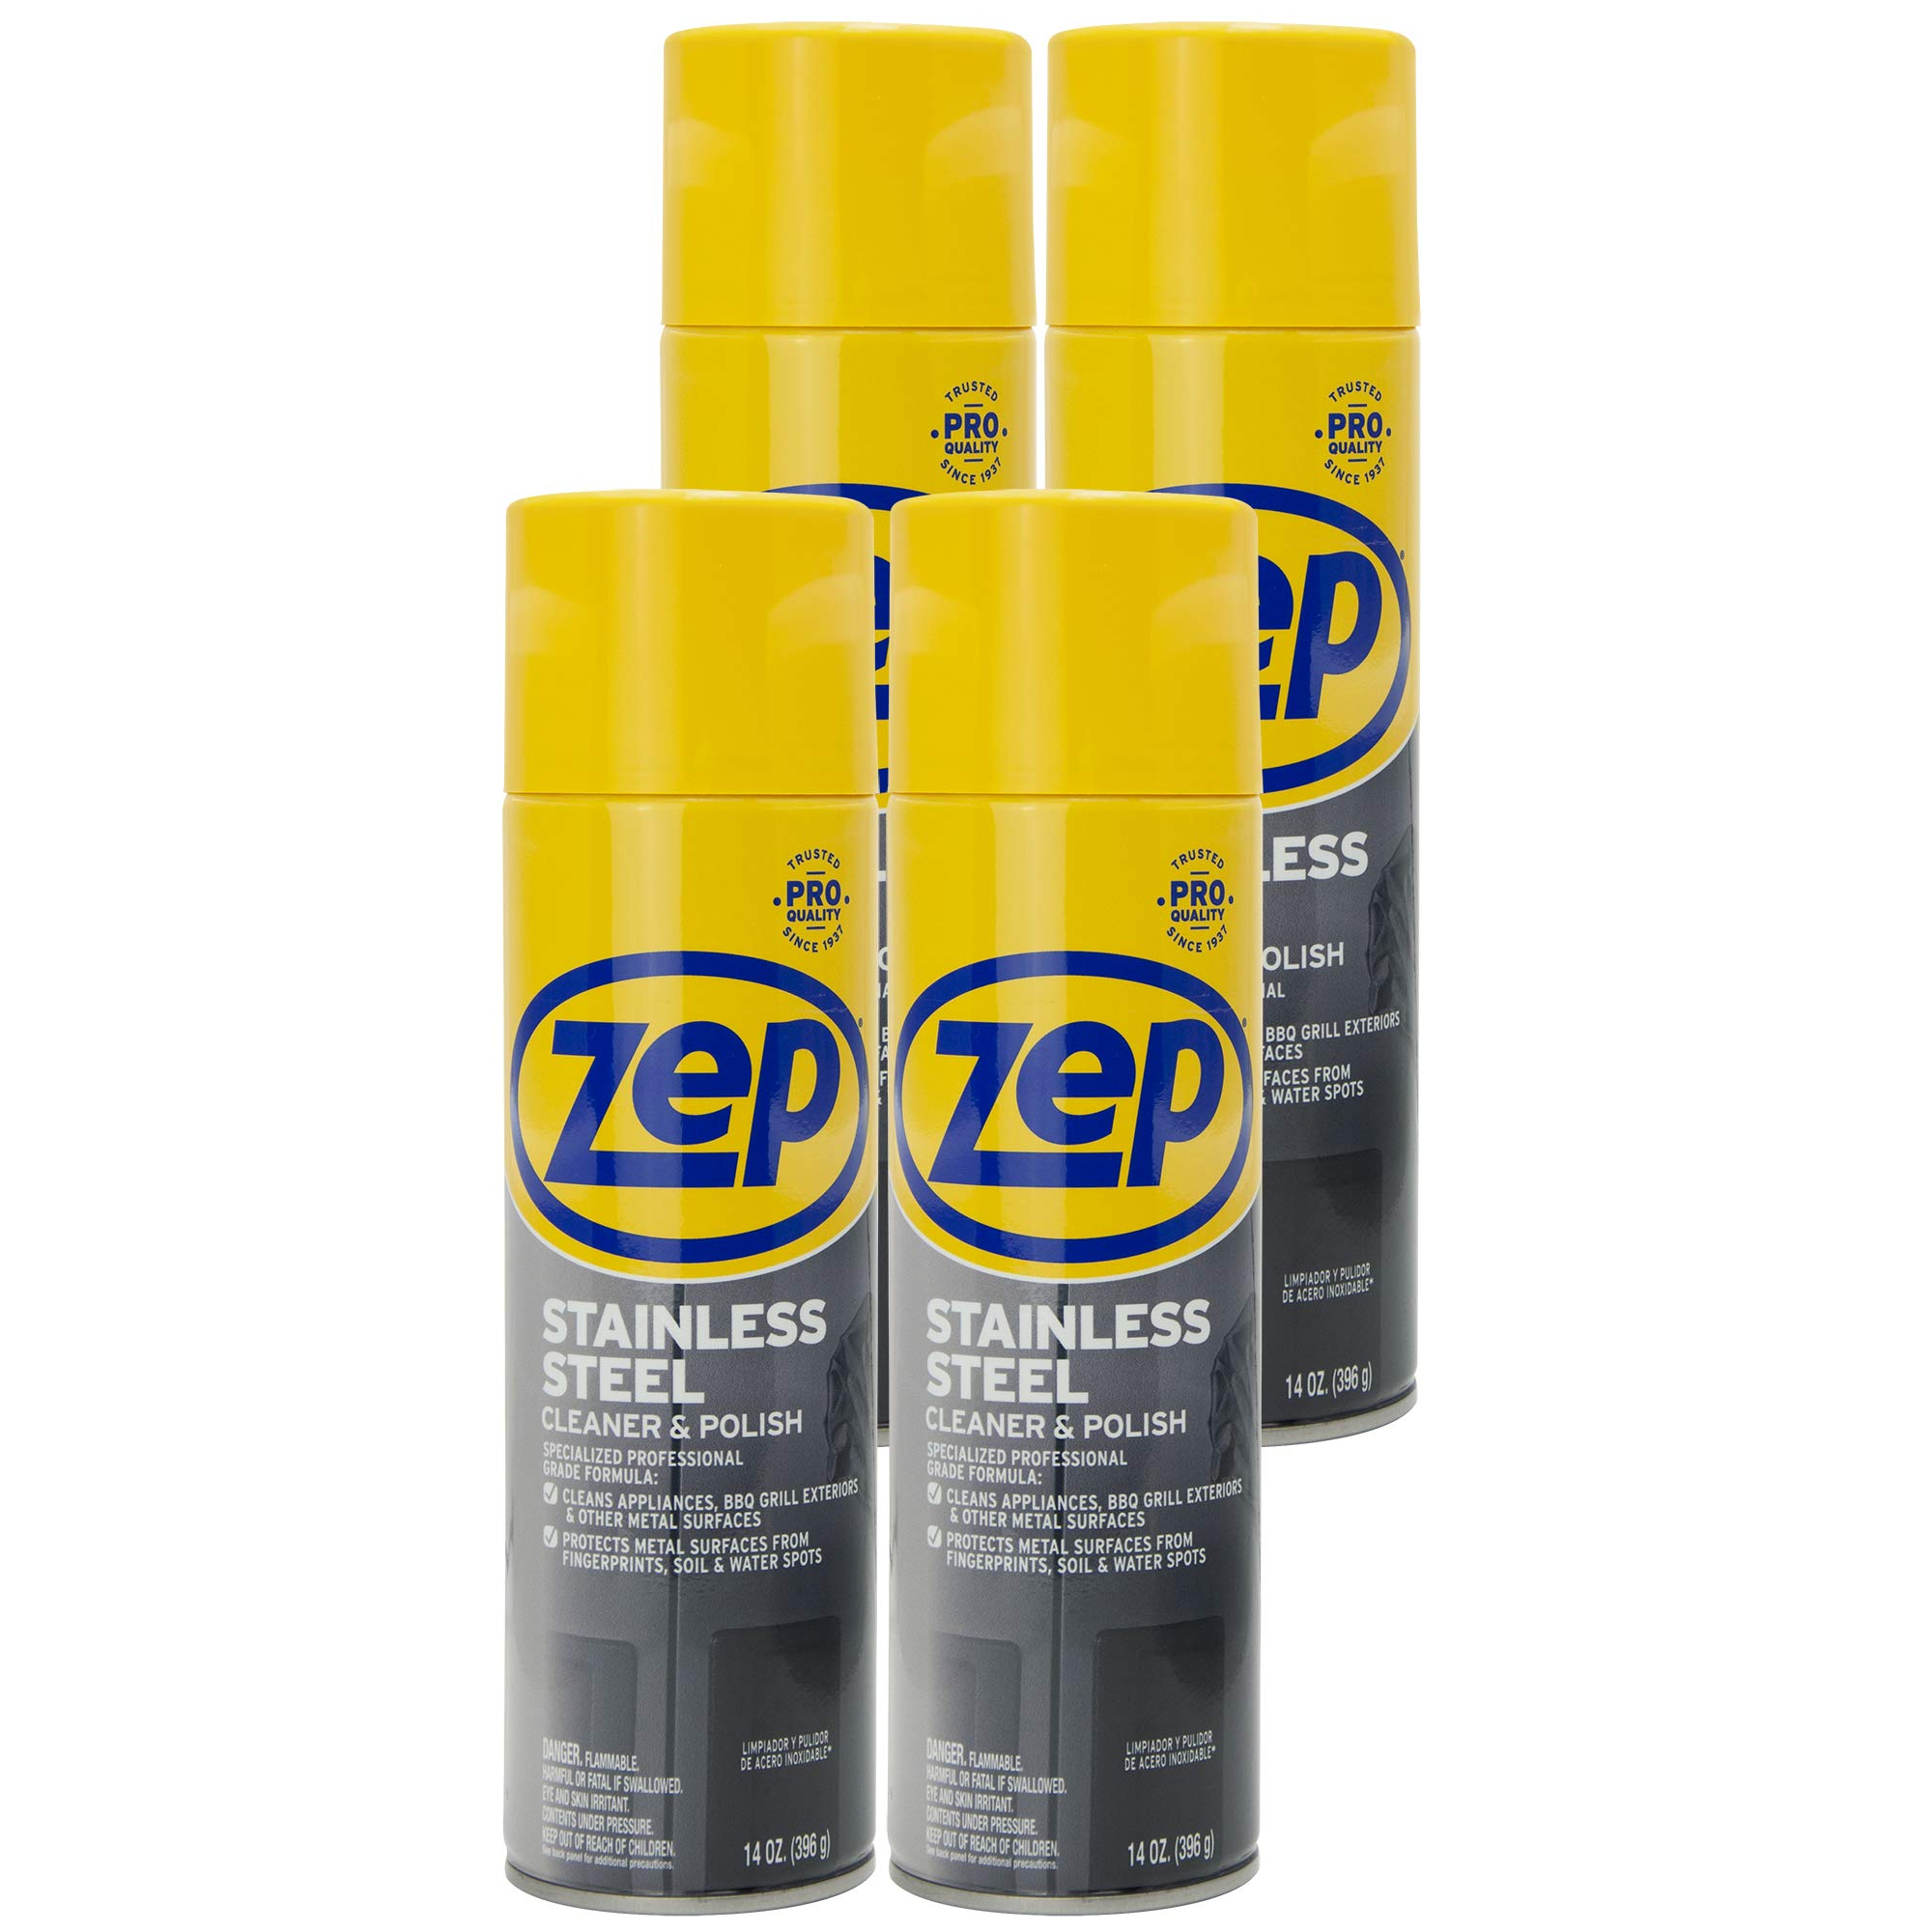 Zep Stainless Steel Cleaner 14 Ounce ZUSSTL14 (case of 4) by Zep (Image #1)